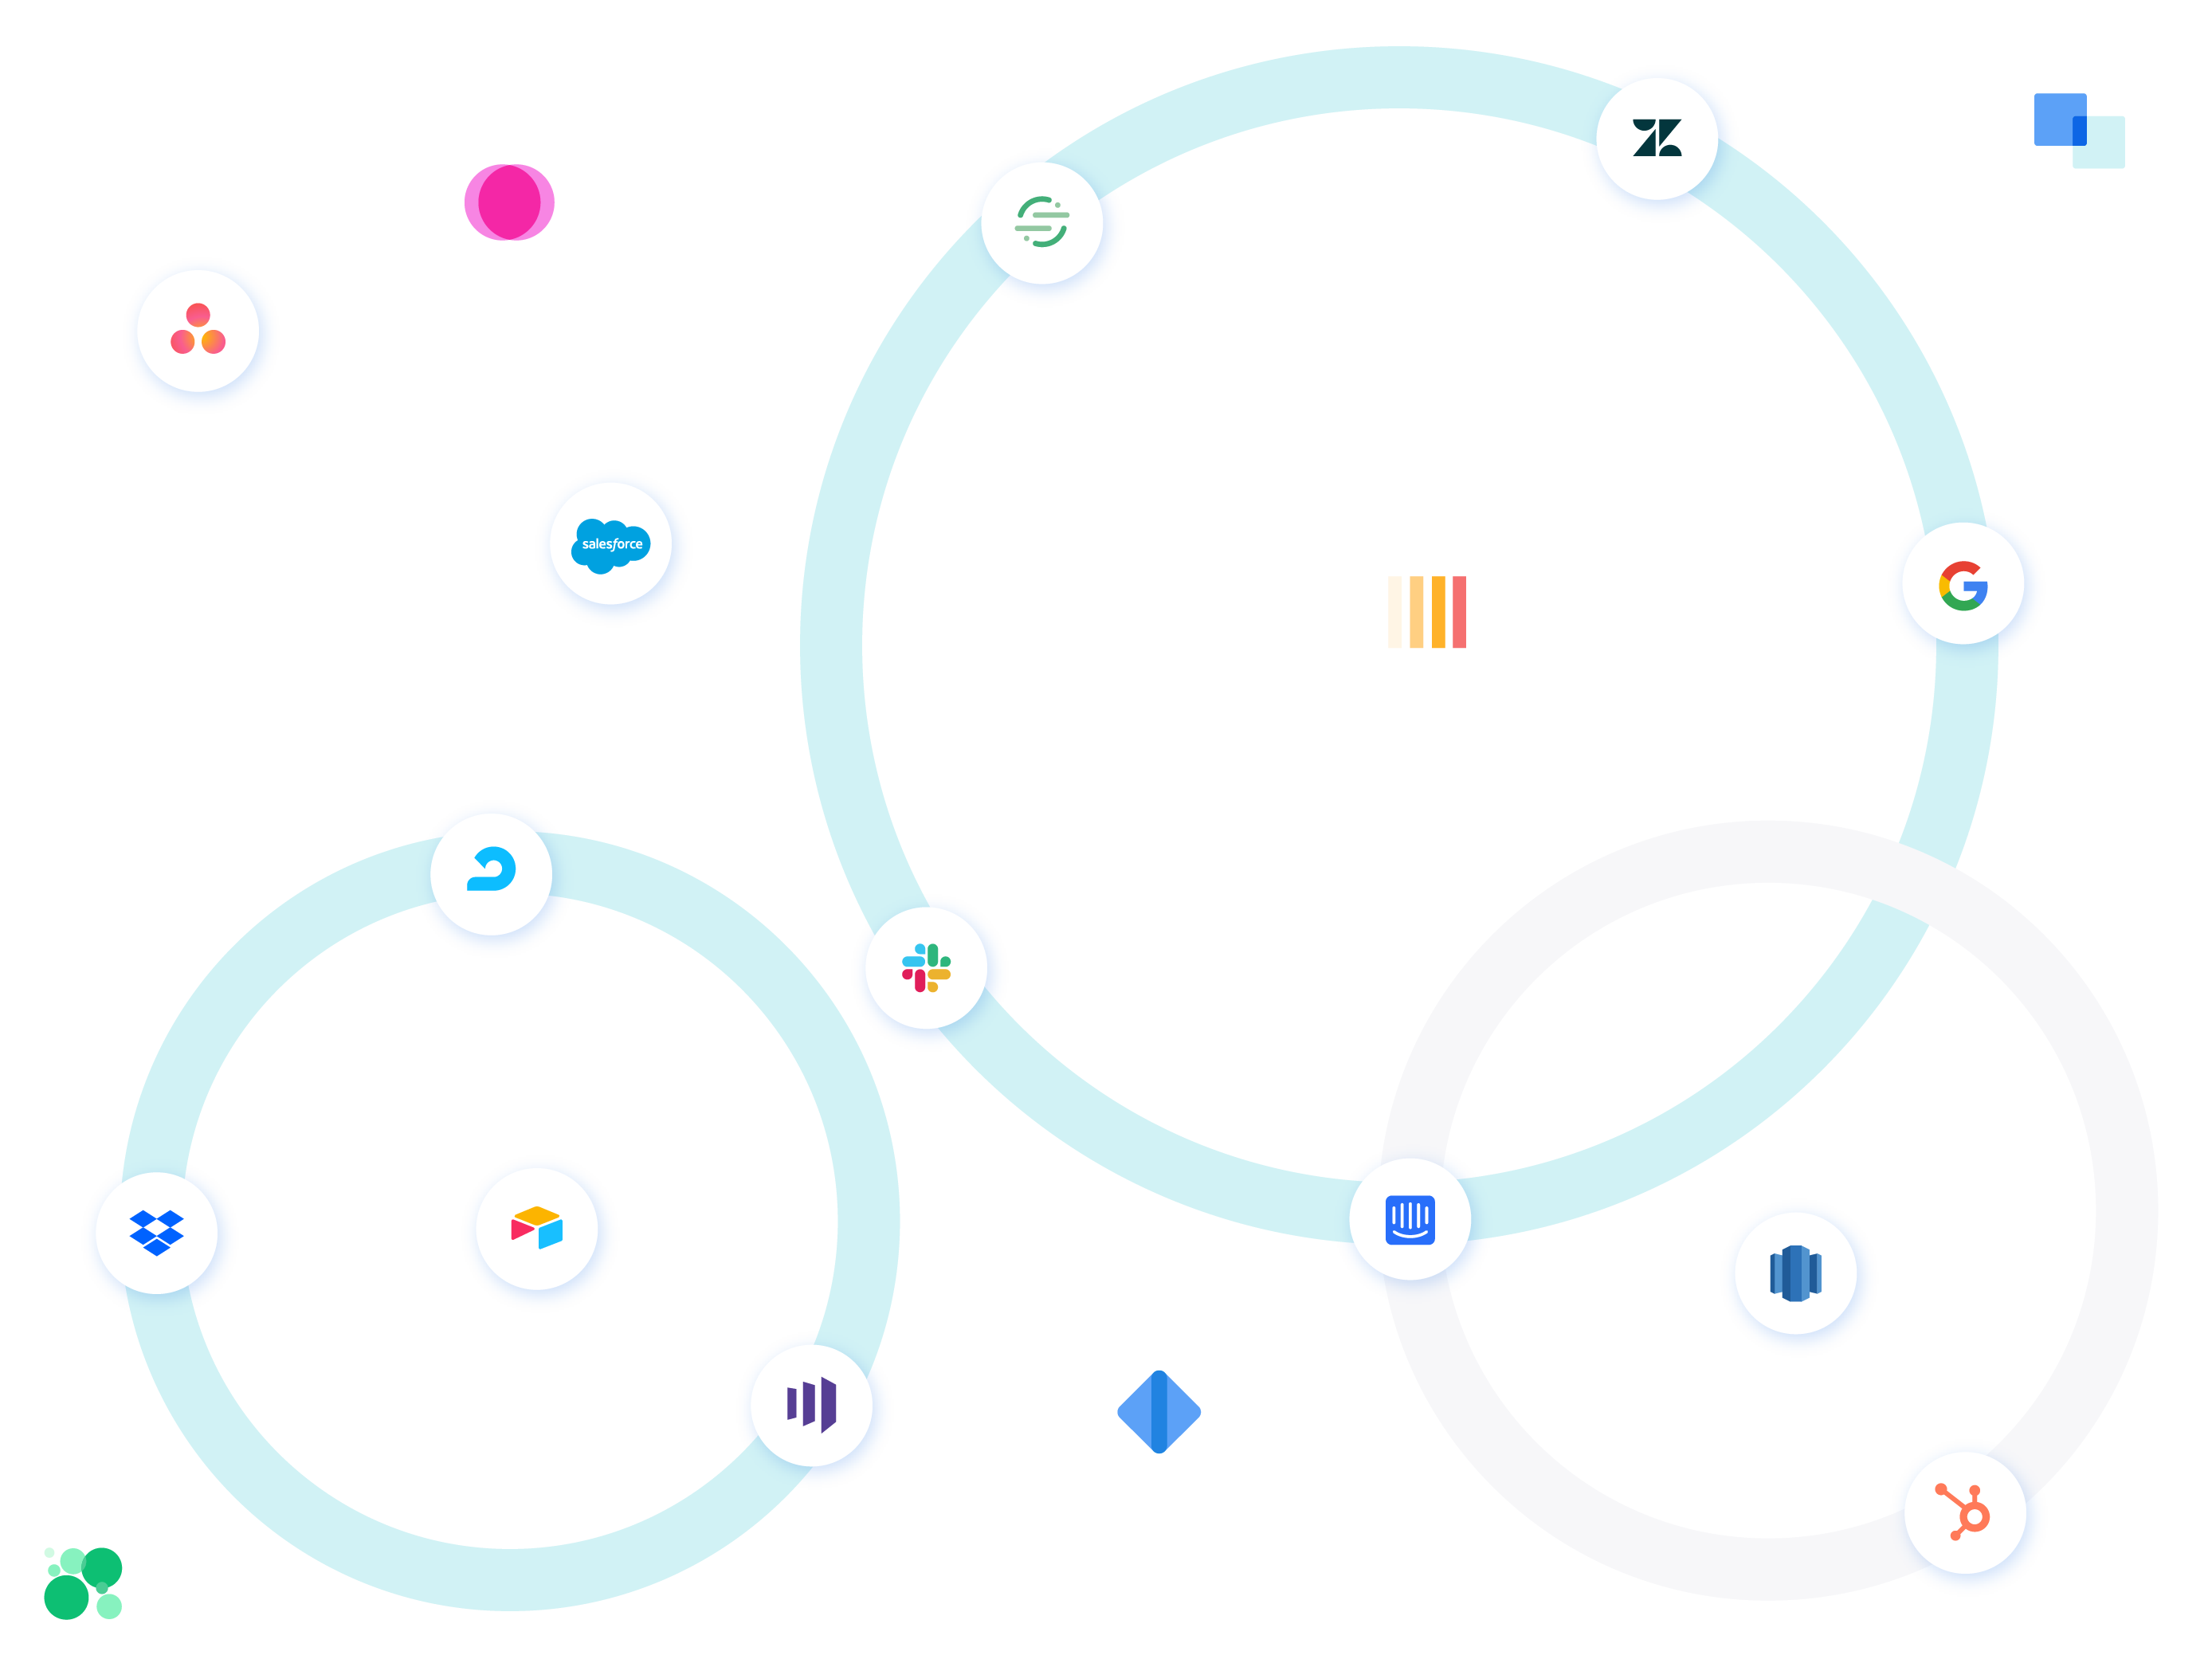 Tray.io product can flexible and can handle complex workflows